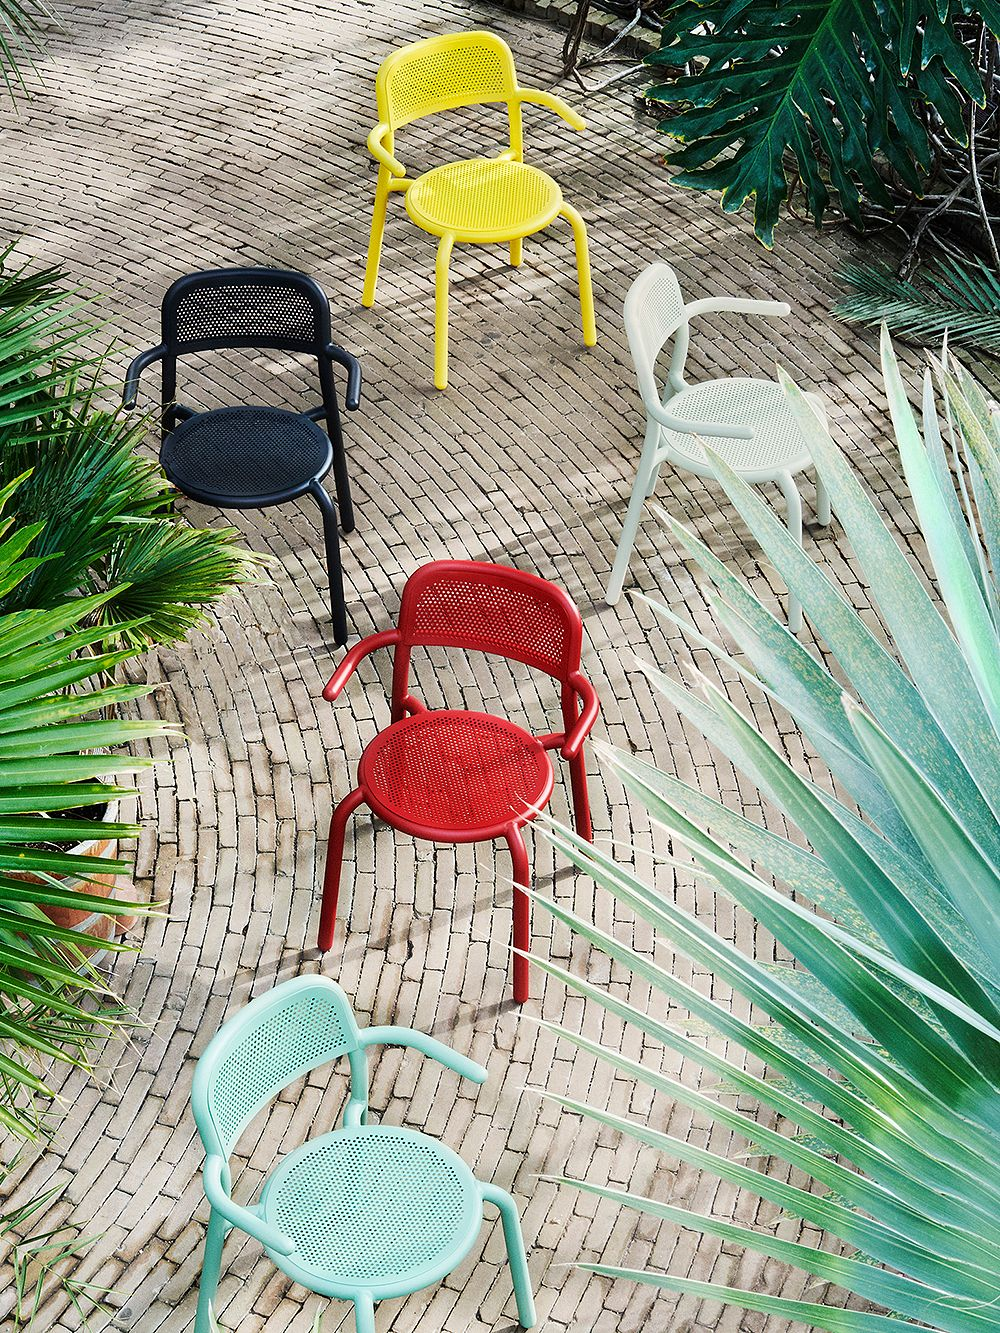 Fatboy's Toni chairs